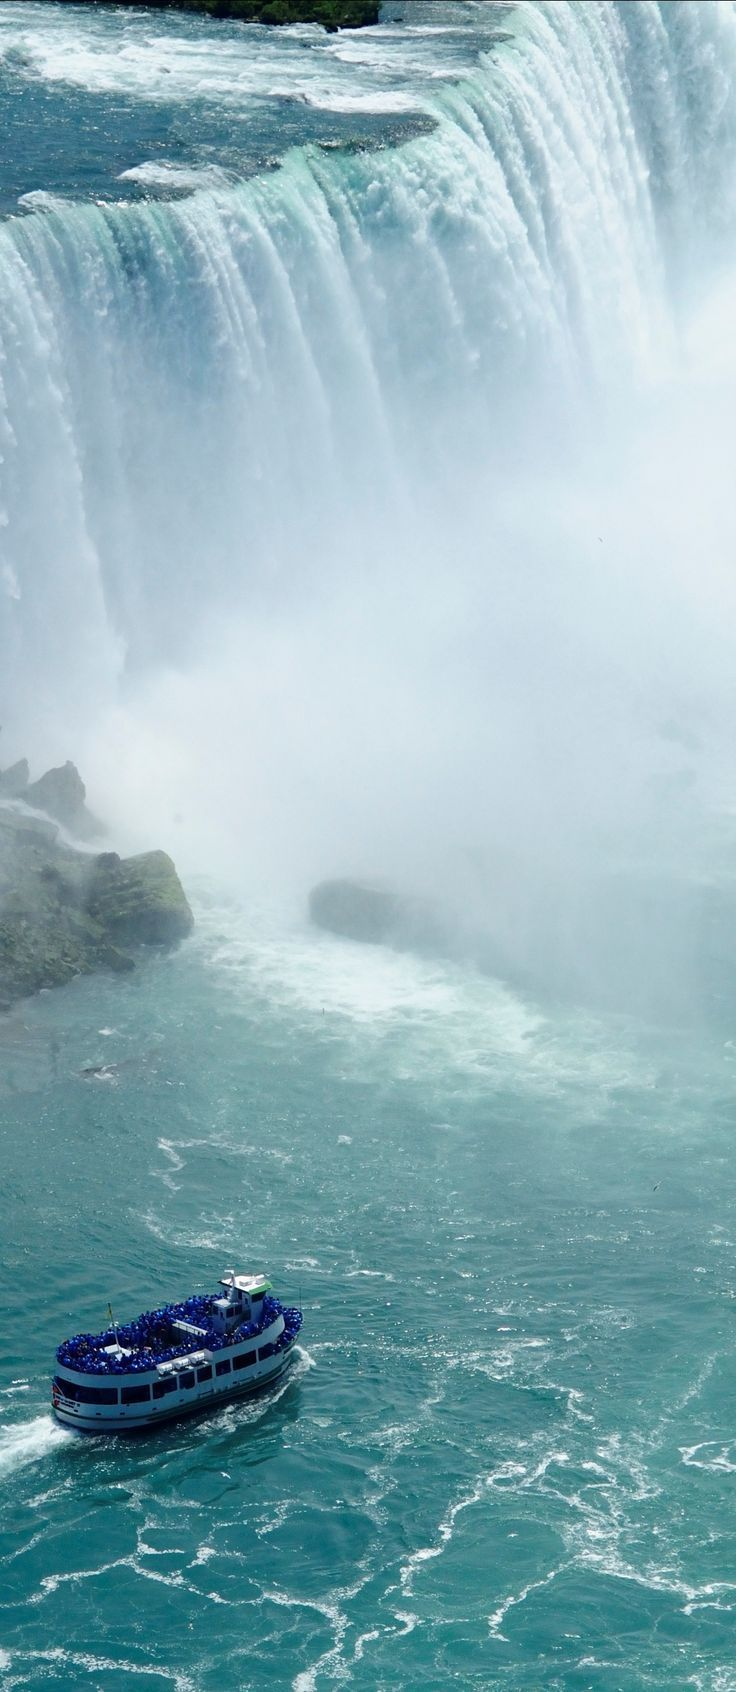 The Maid of the Mist boat ride - fun but got totally soaked being so close to the falls - Niagara Falls, Canada, take a boat ride so close to the falls, amazing